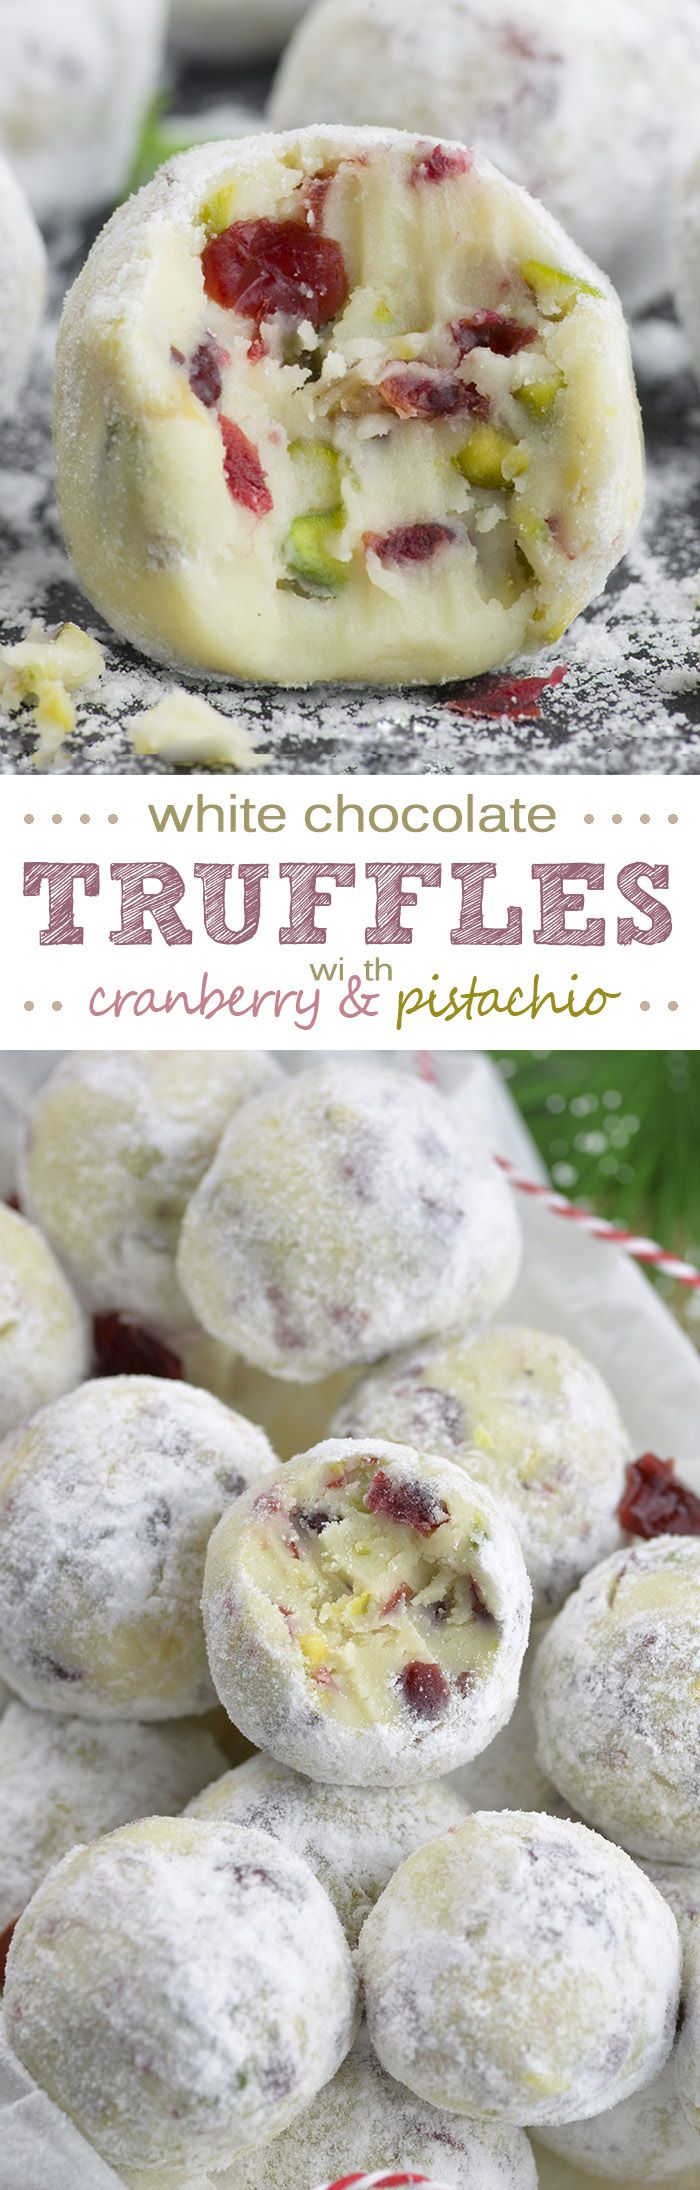 Cranberry Pistachio White Chocolate Truffles - Chocolate Dessert Recipes